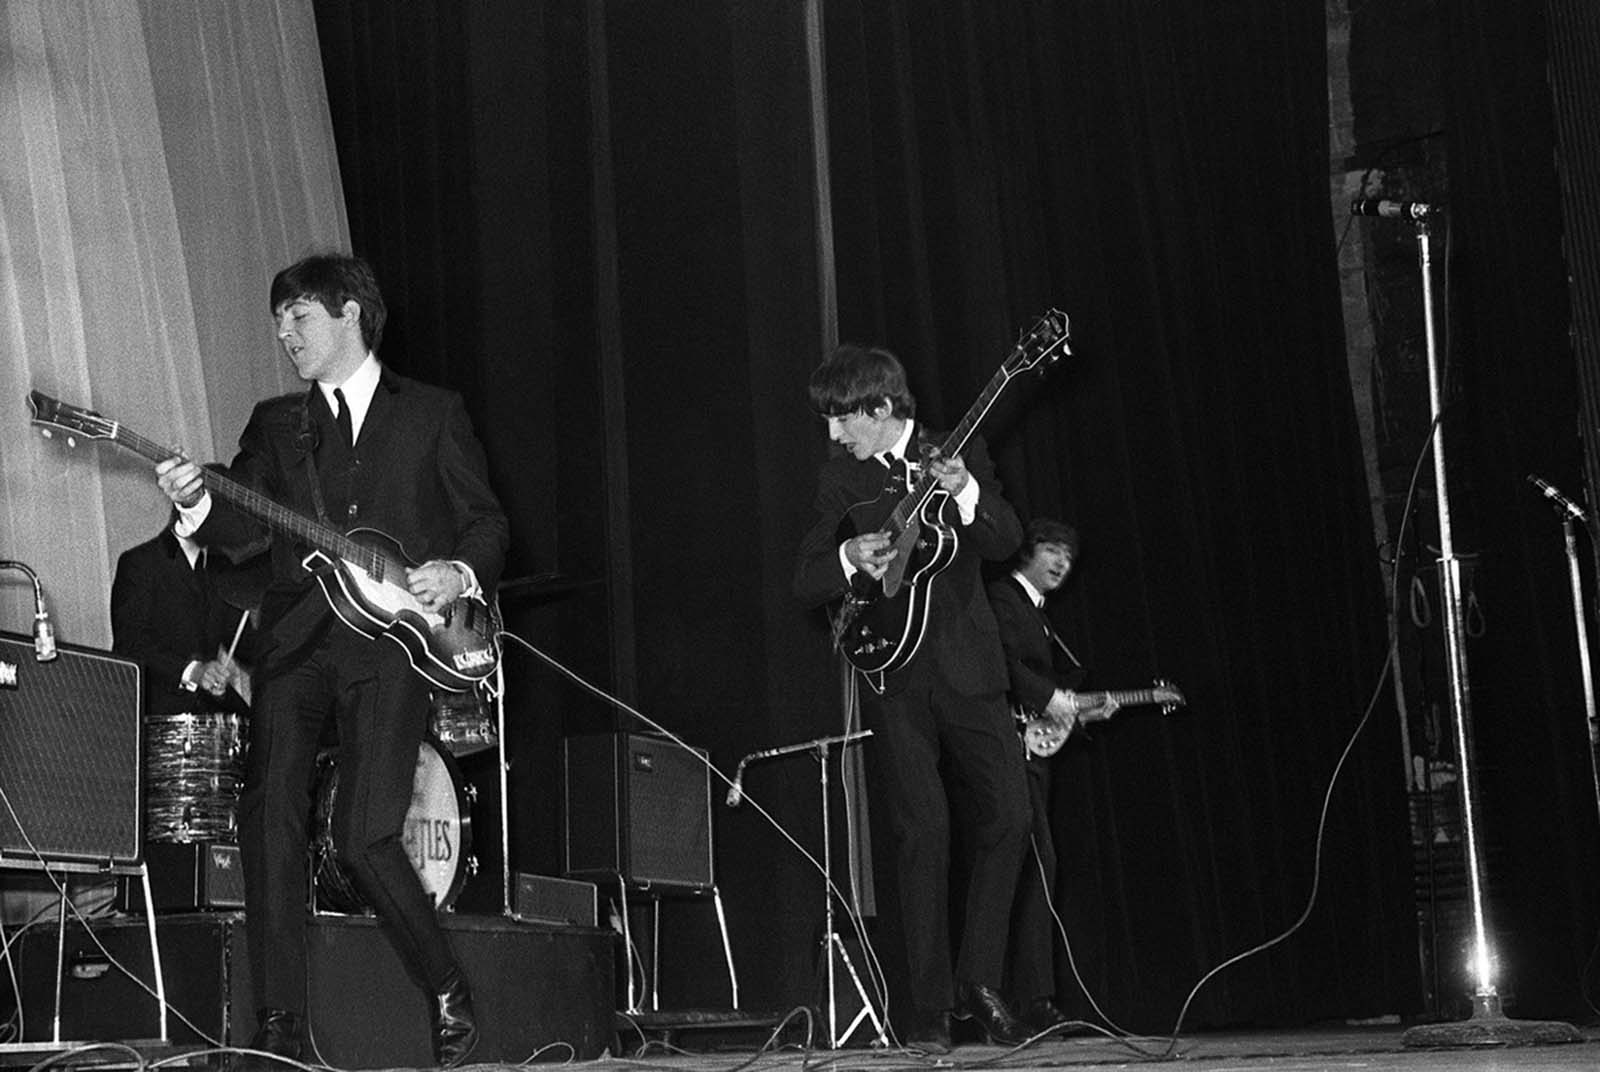 The Beatles perform their first concert outside of Britain, at the Olympia in Paris, on January 17, 1964.